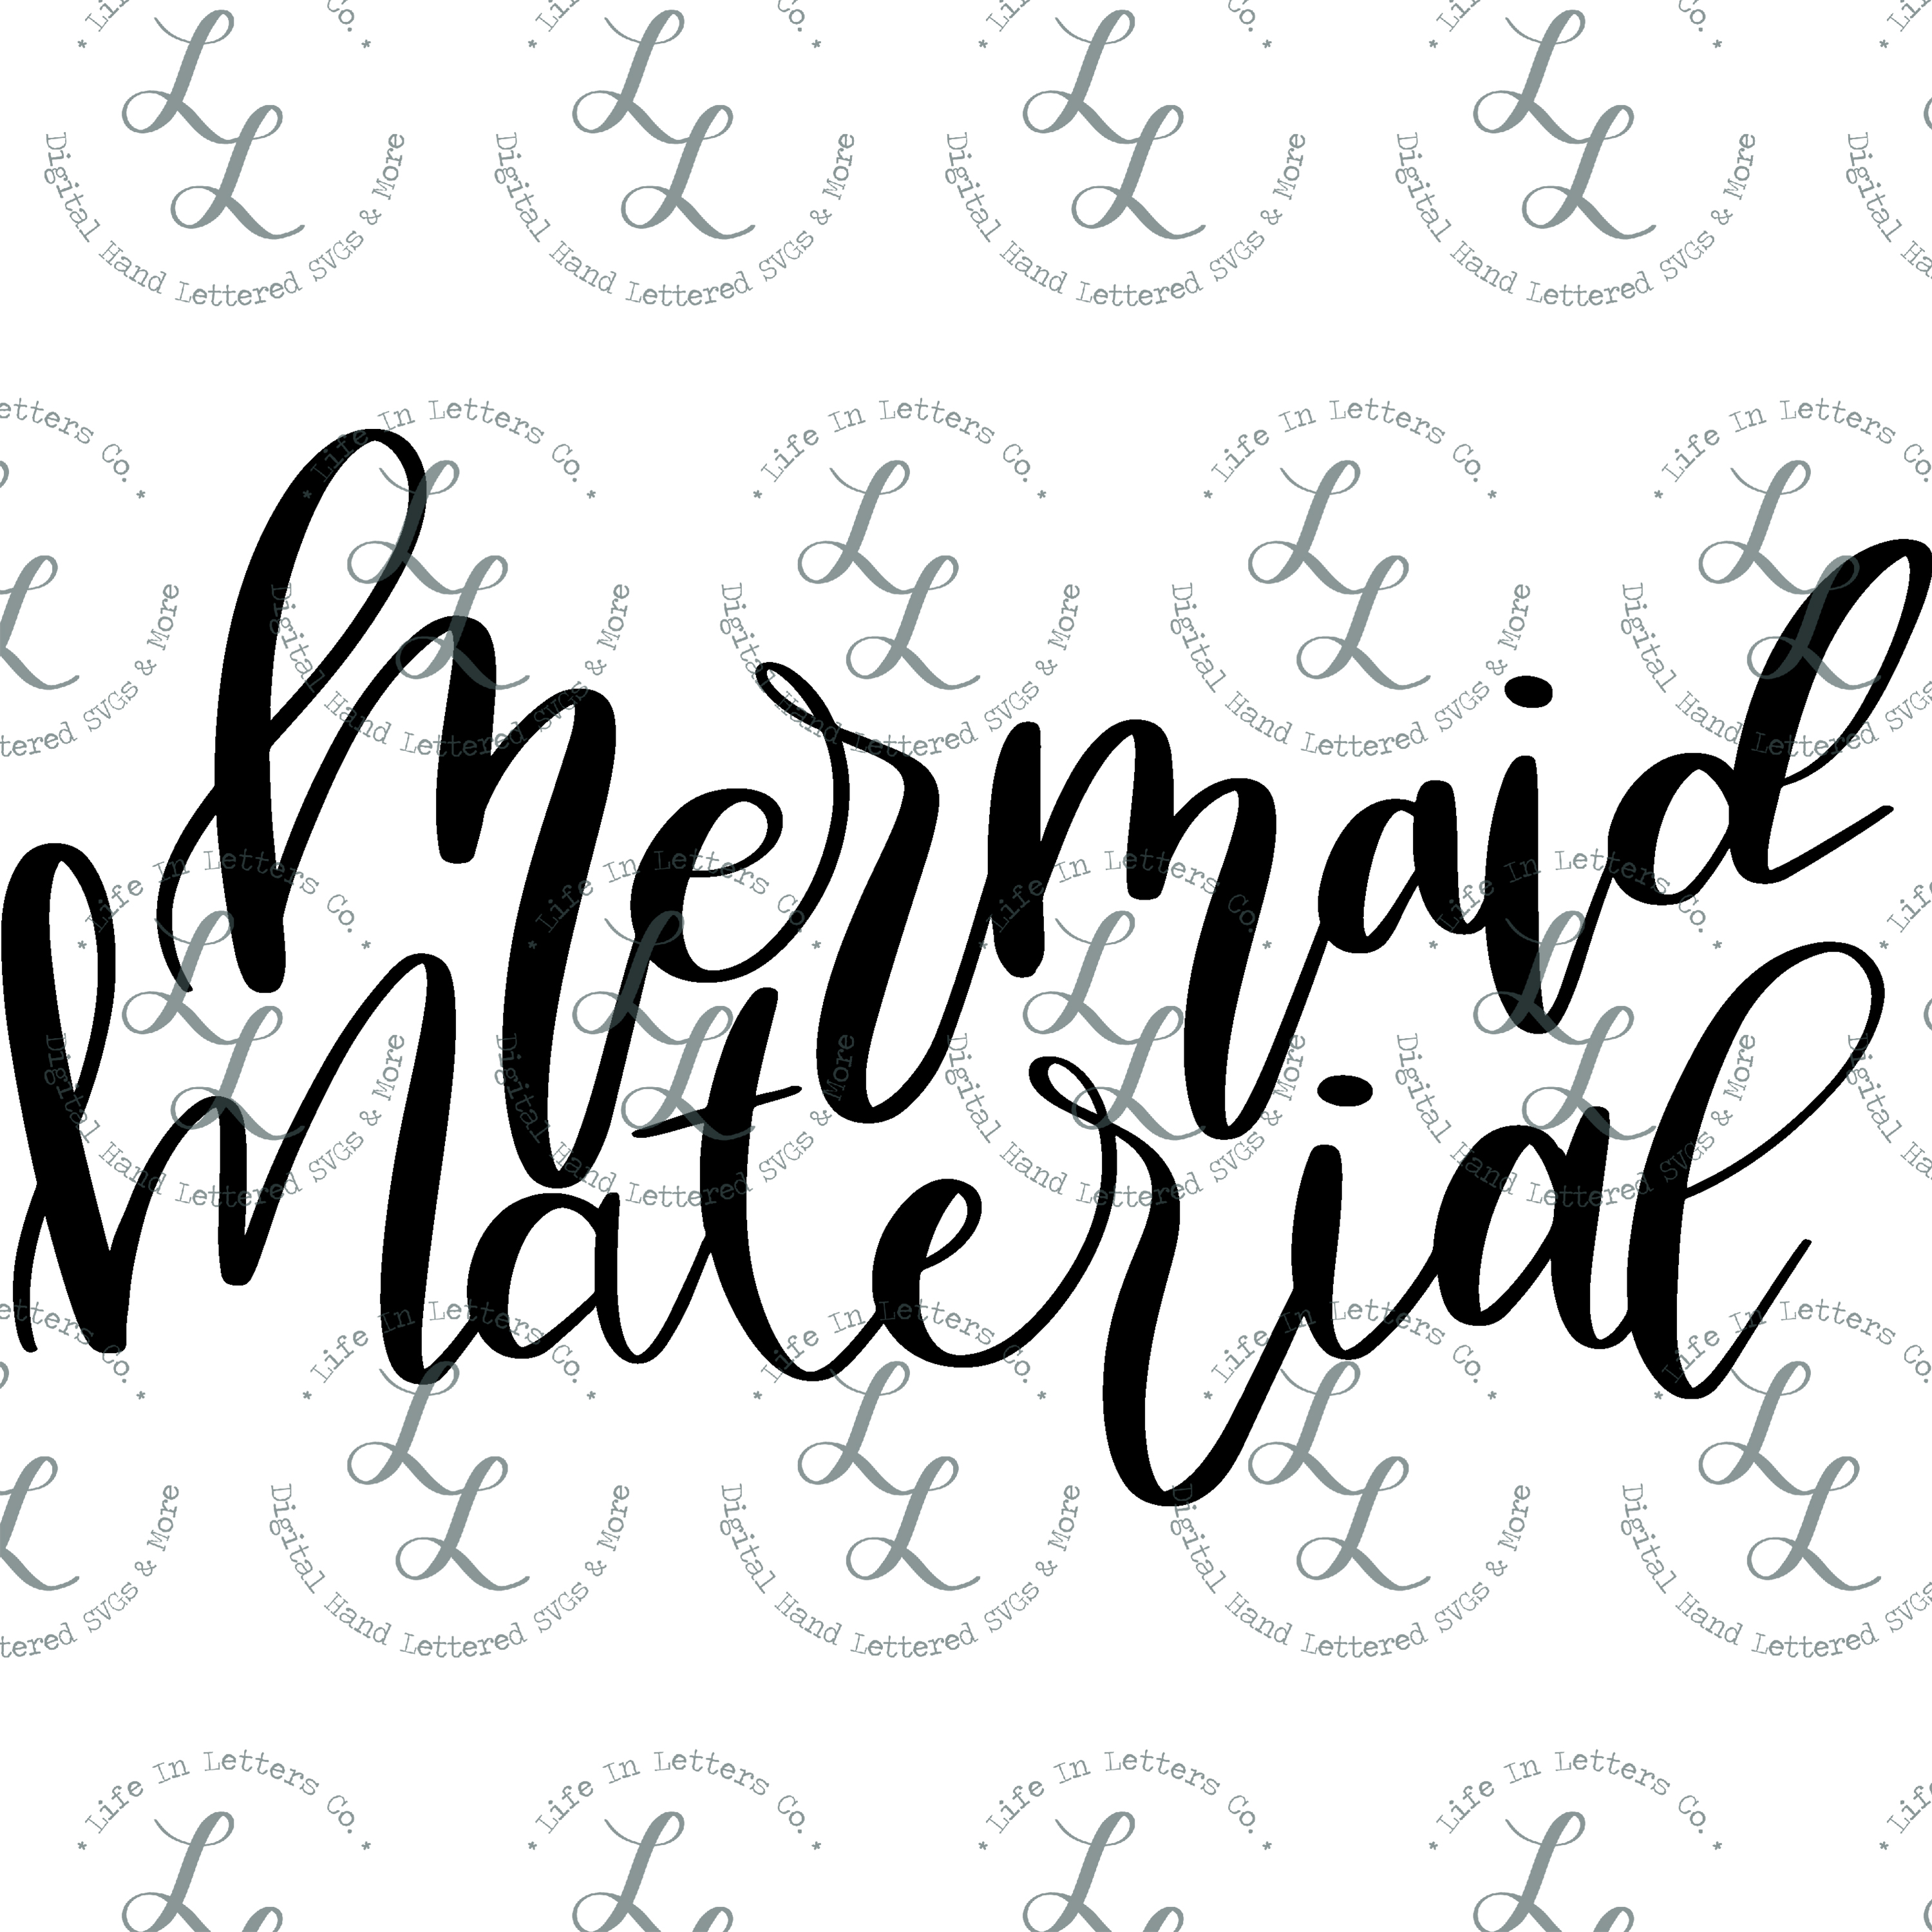 Mermaid Material - Cut File SVG png eps dxf example image 2